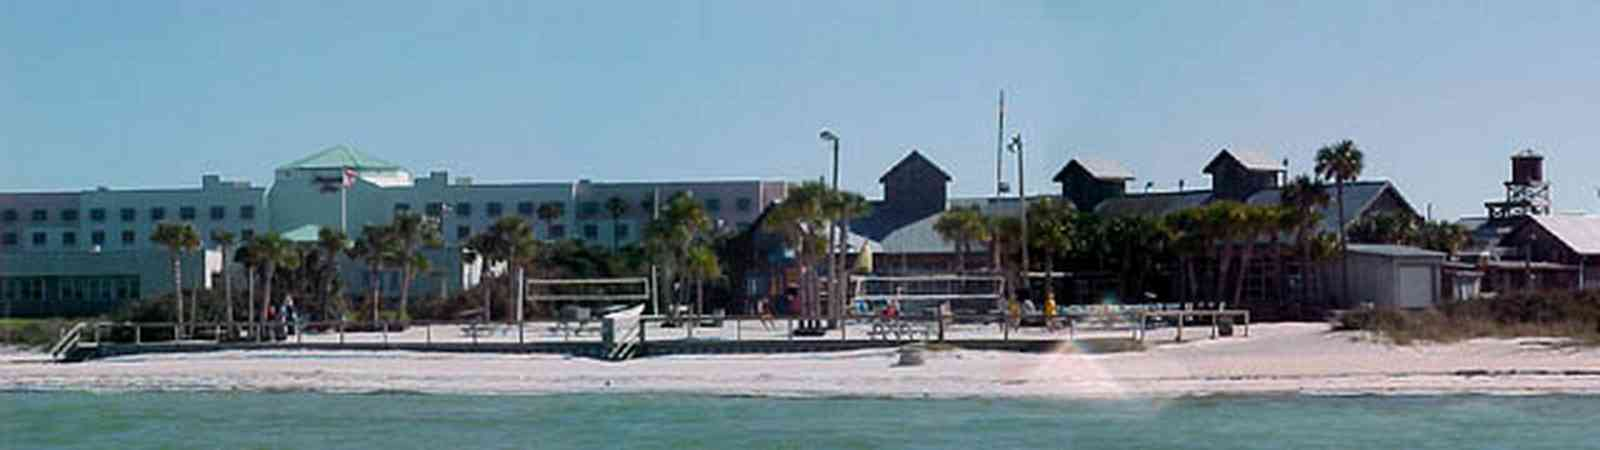 Pensacola-Beach:-Flounders-Restaurant_02.jpg:  sound, gulf of mexico, gulf coast, palm trees, hampton hotel, quietwater beach, volleyball courts